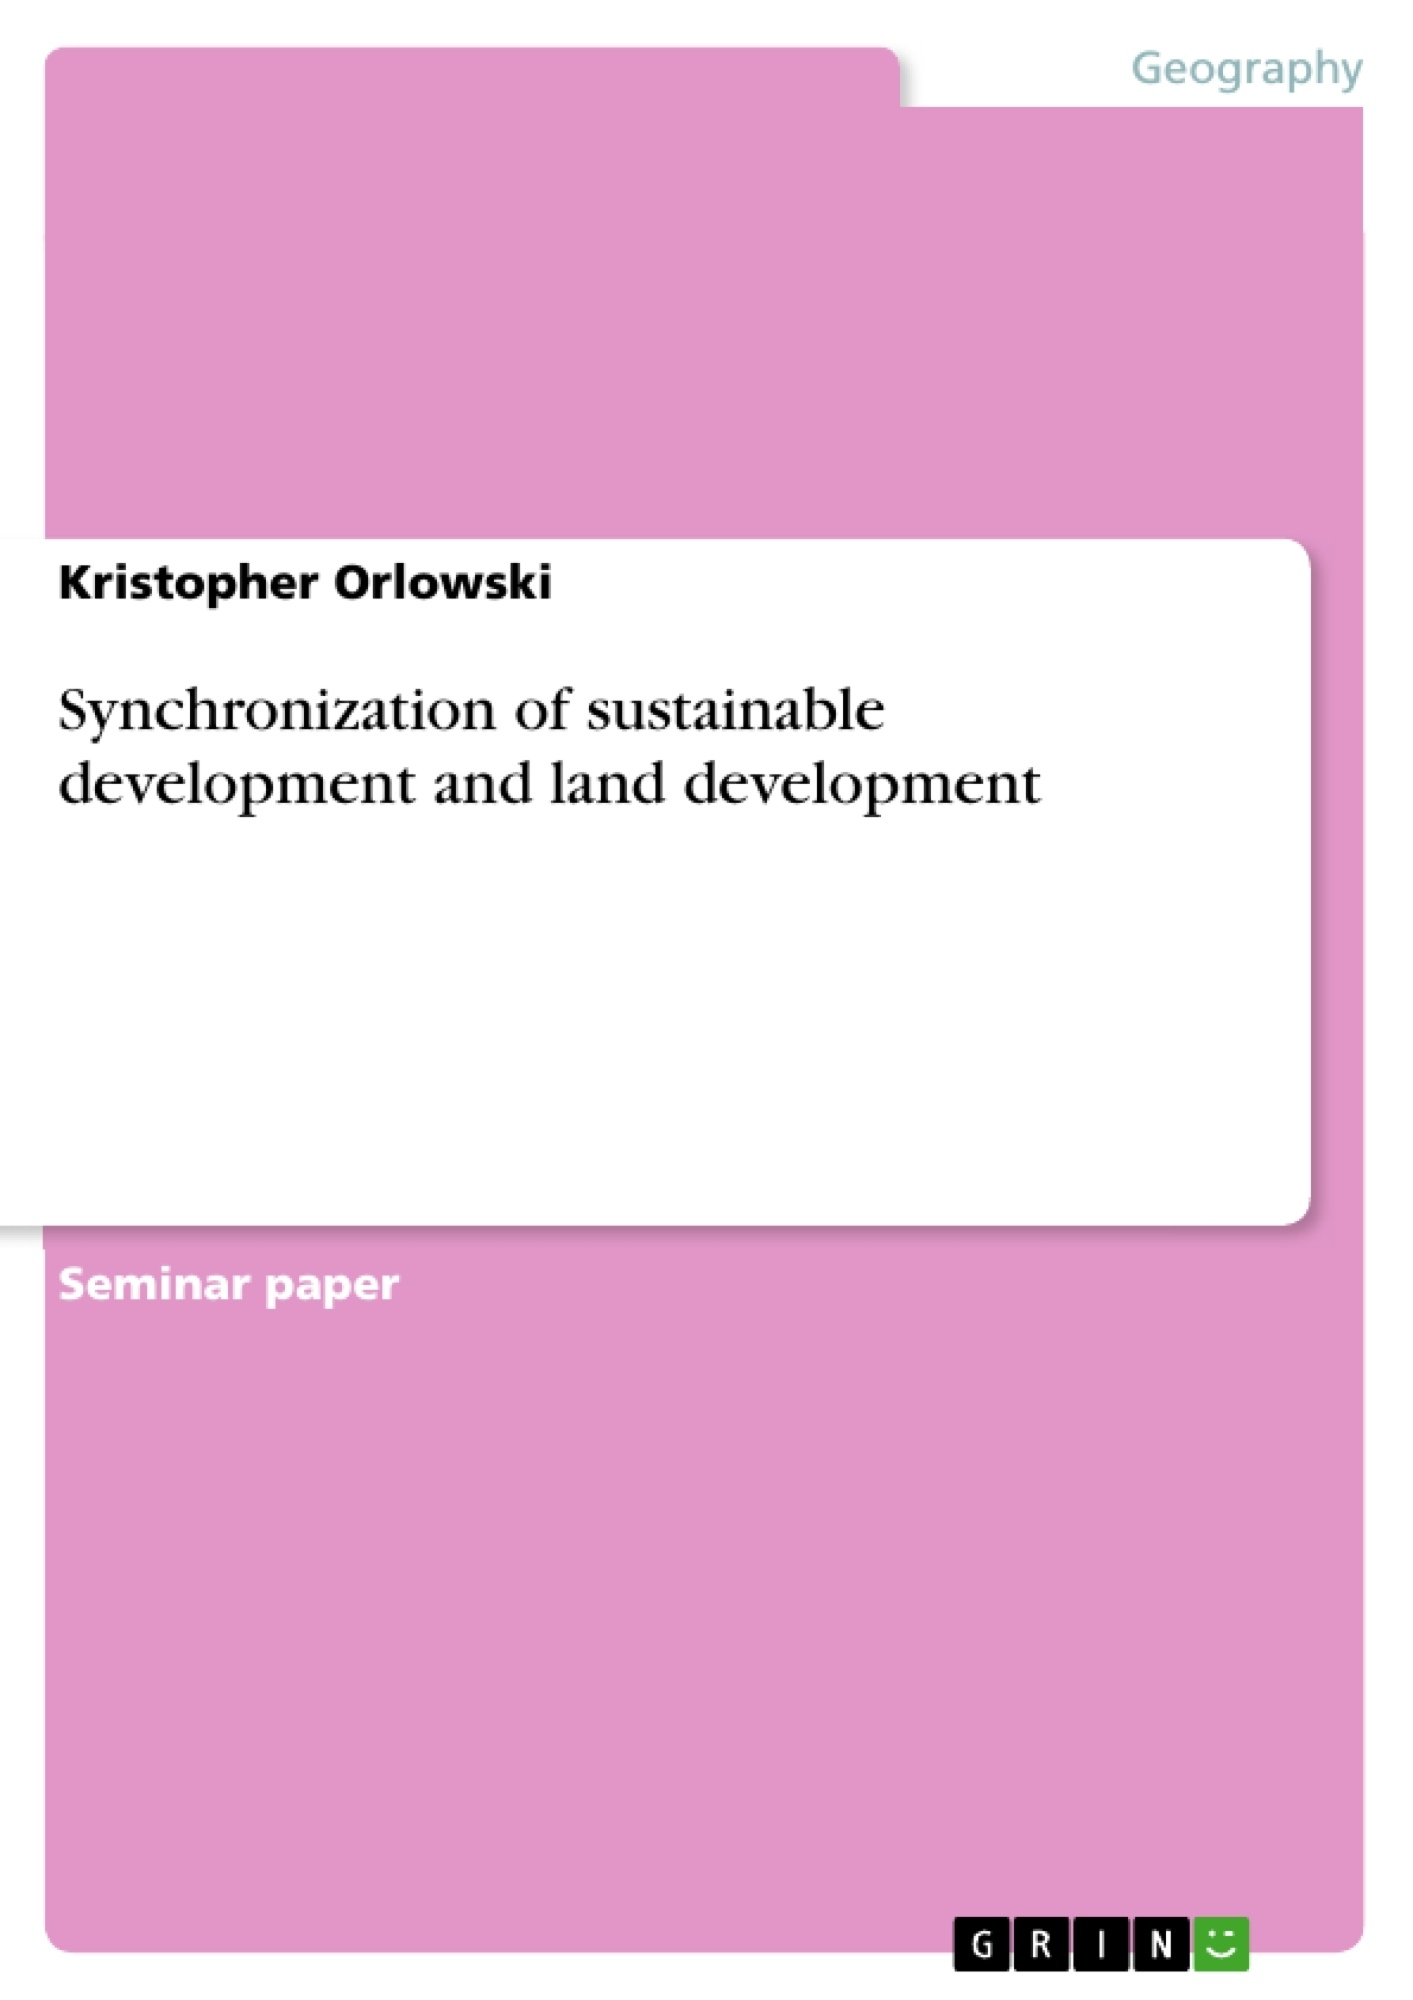 Title: Synchronization of sustainable development and land development